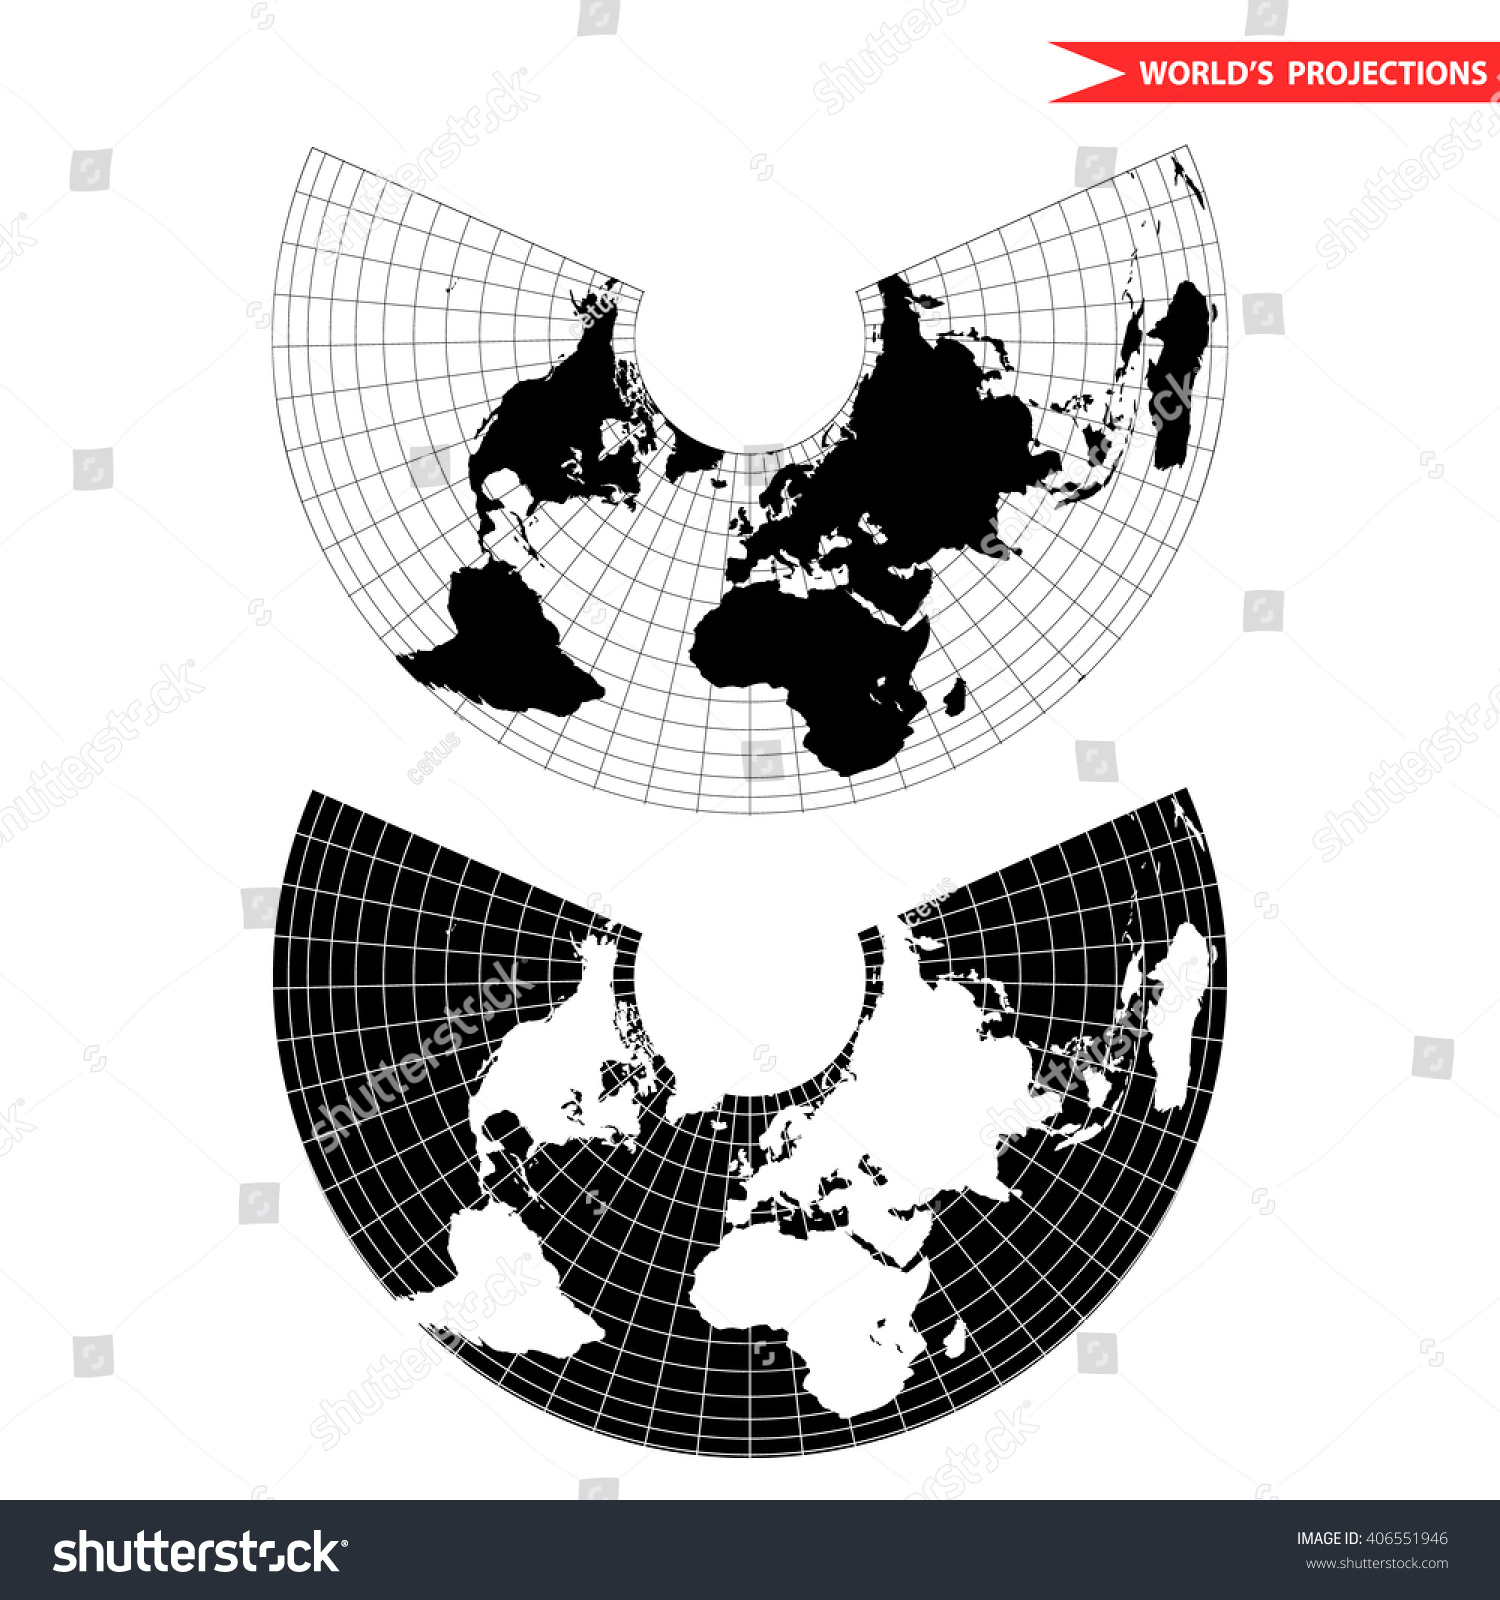 Albers Equal Area Conic Projection Black And White World Map With  Countries And Borders